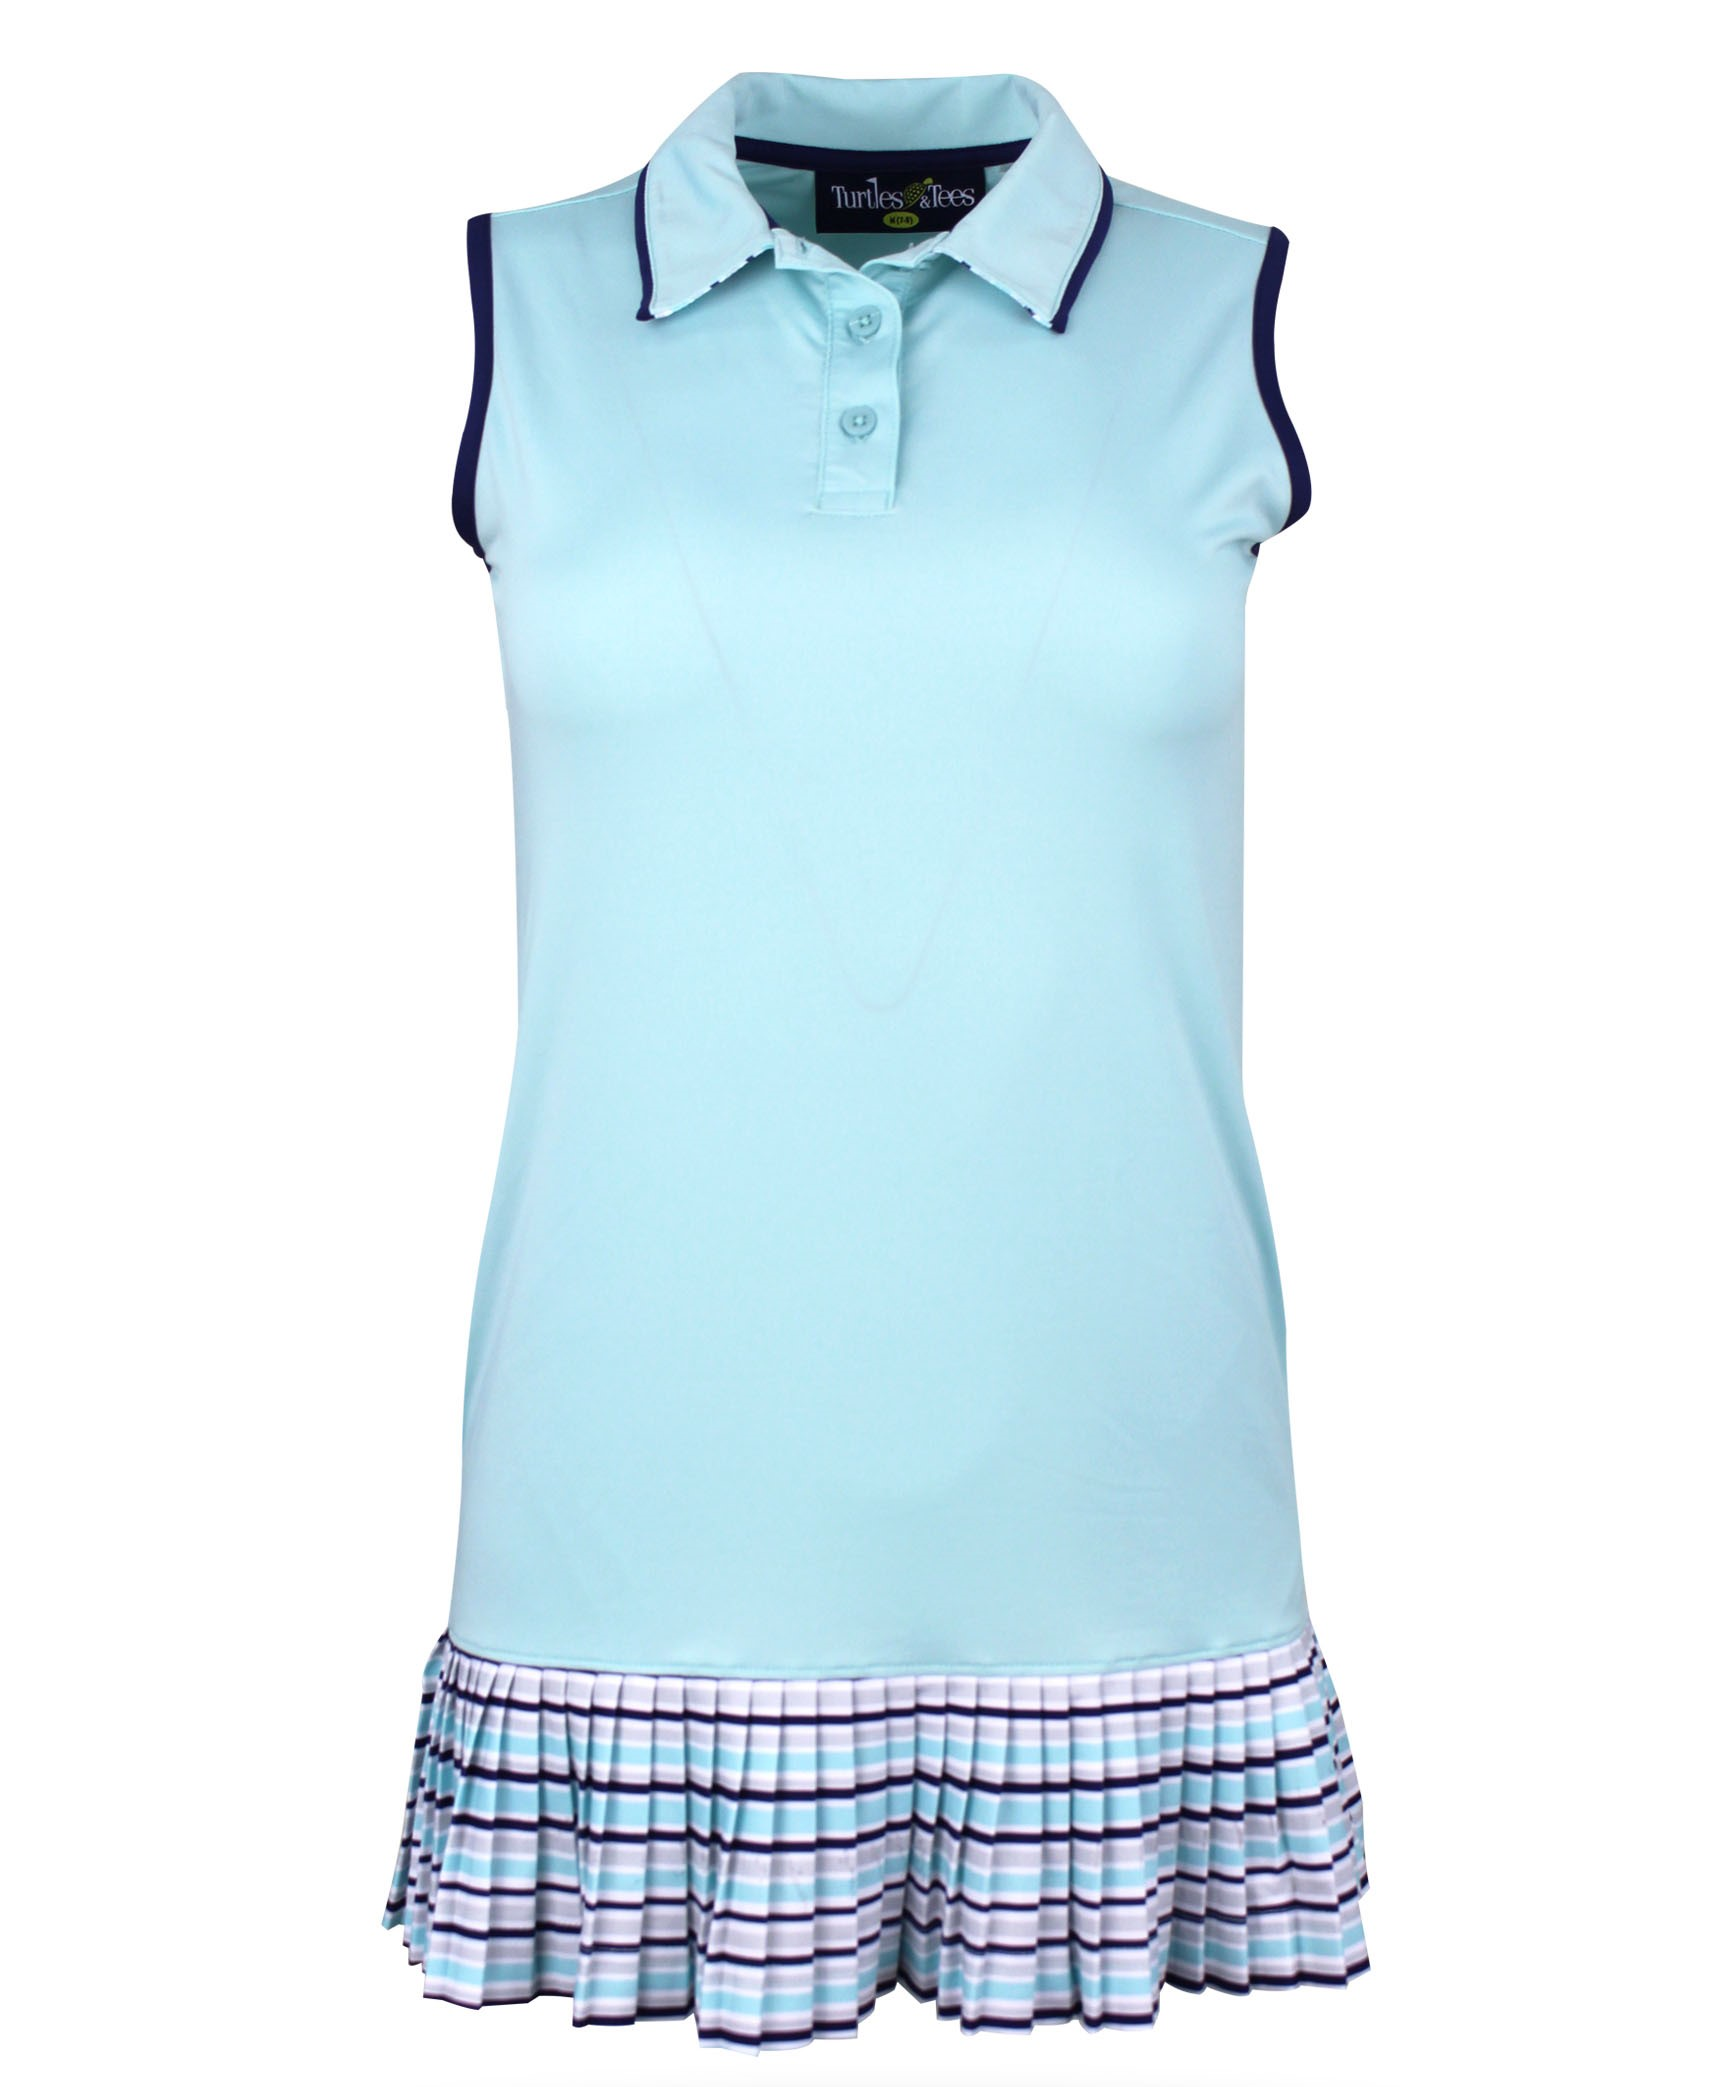 Kaye Ann Girl's Short Sleeve Golf and Tennis Dress in Turquoise Print w/Coordinating spandex shorts